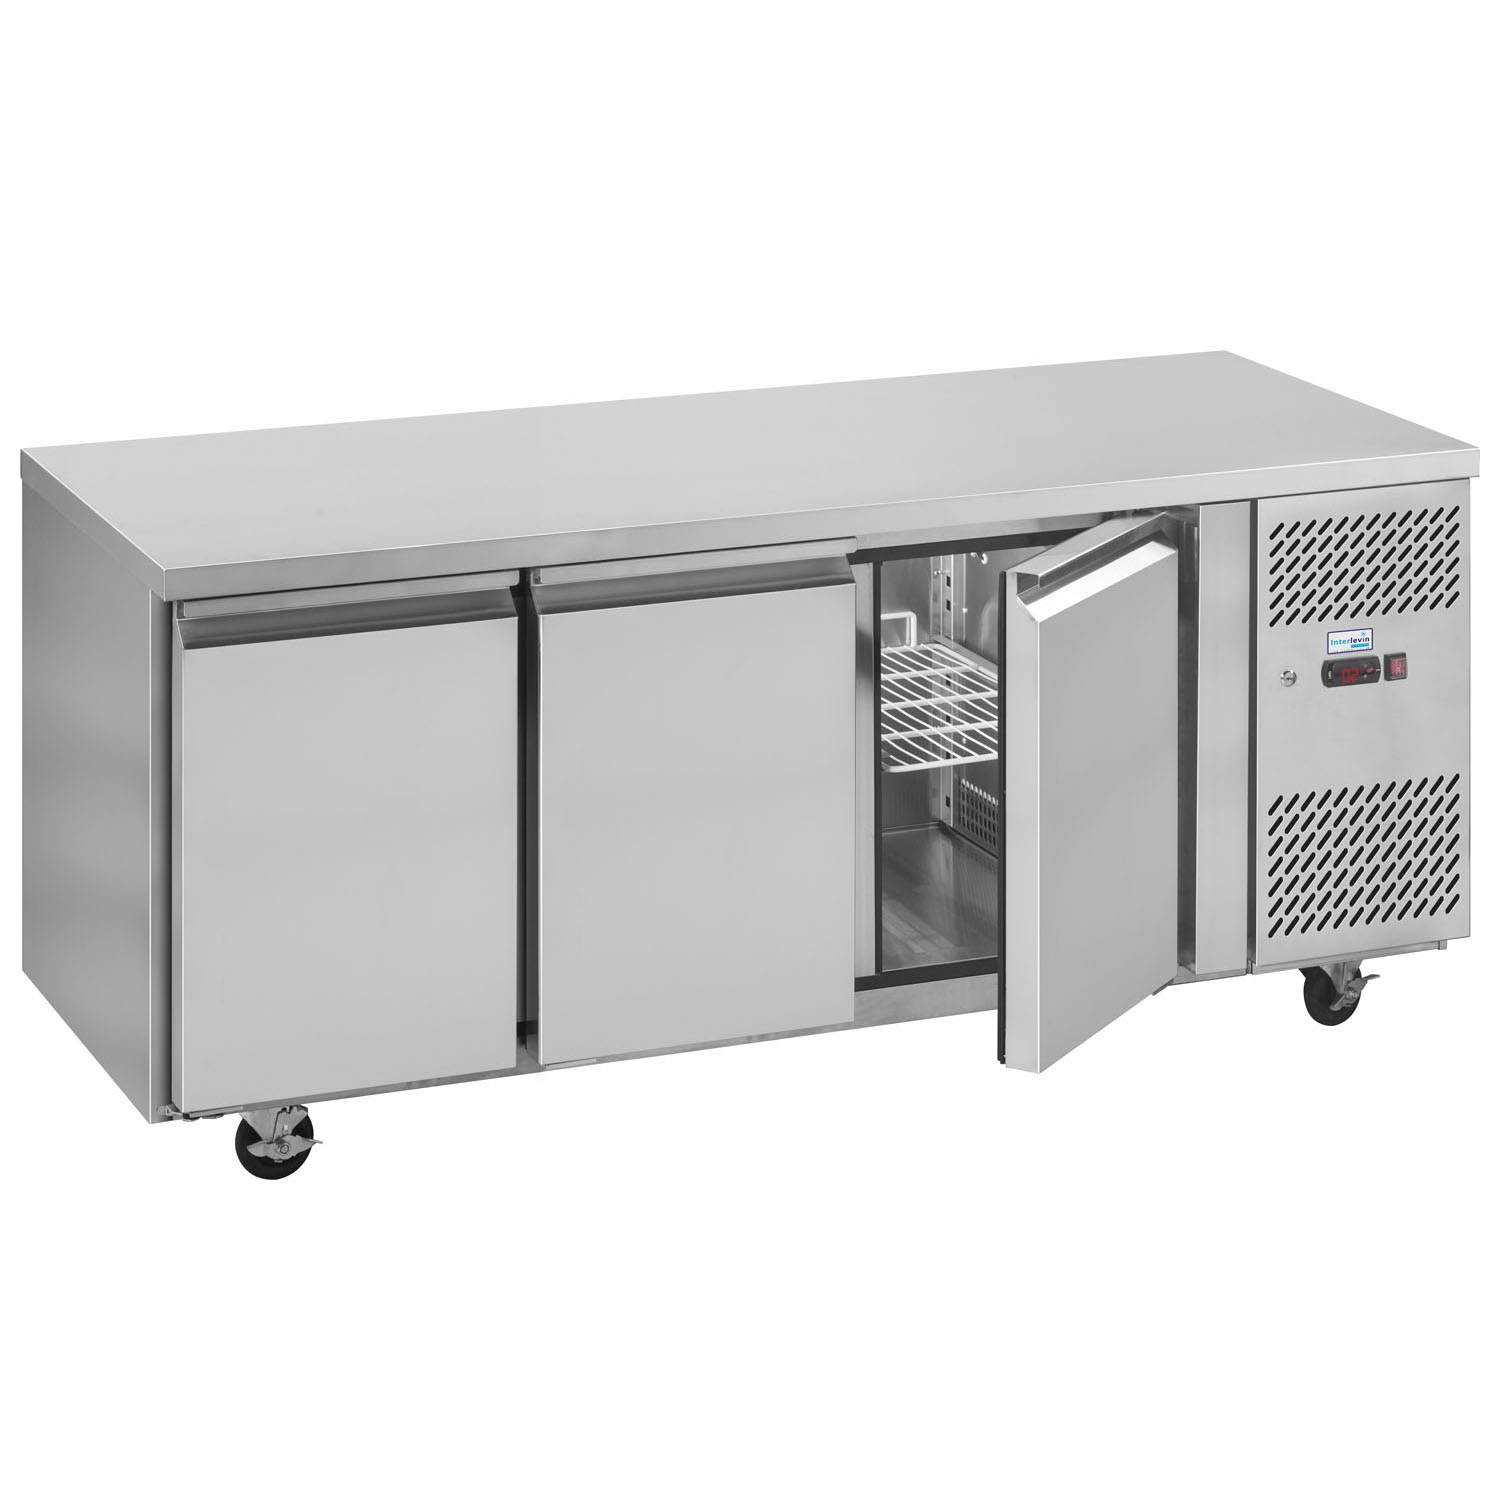 Interlevin PH30 Gastronorm Stainless Steel Counter 3-Door Chiller